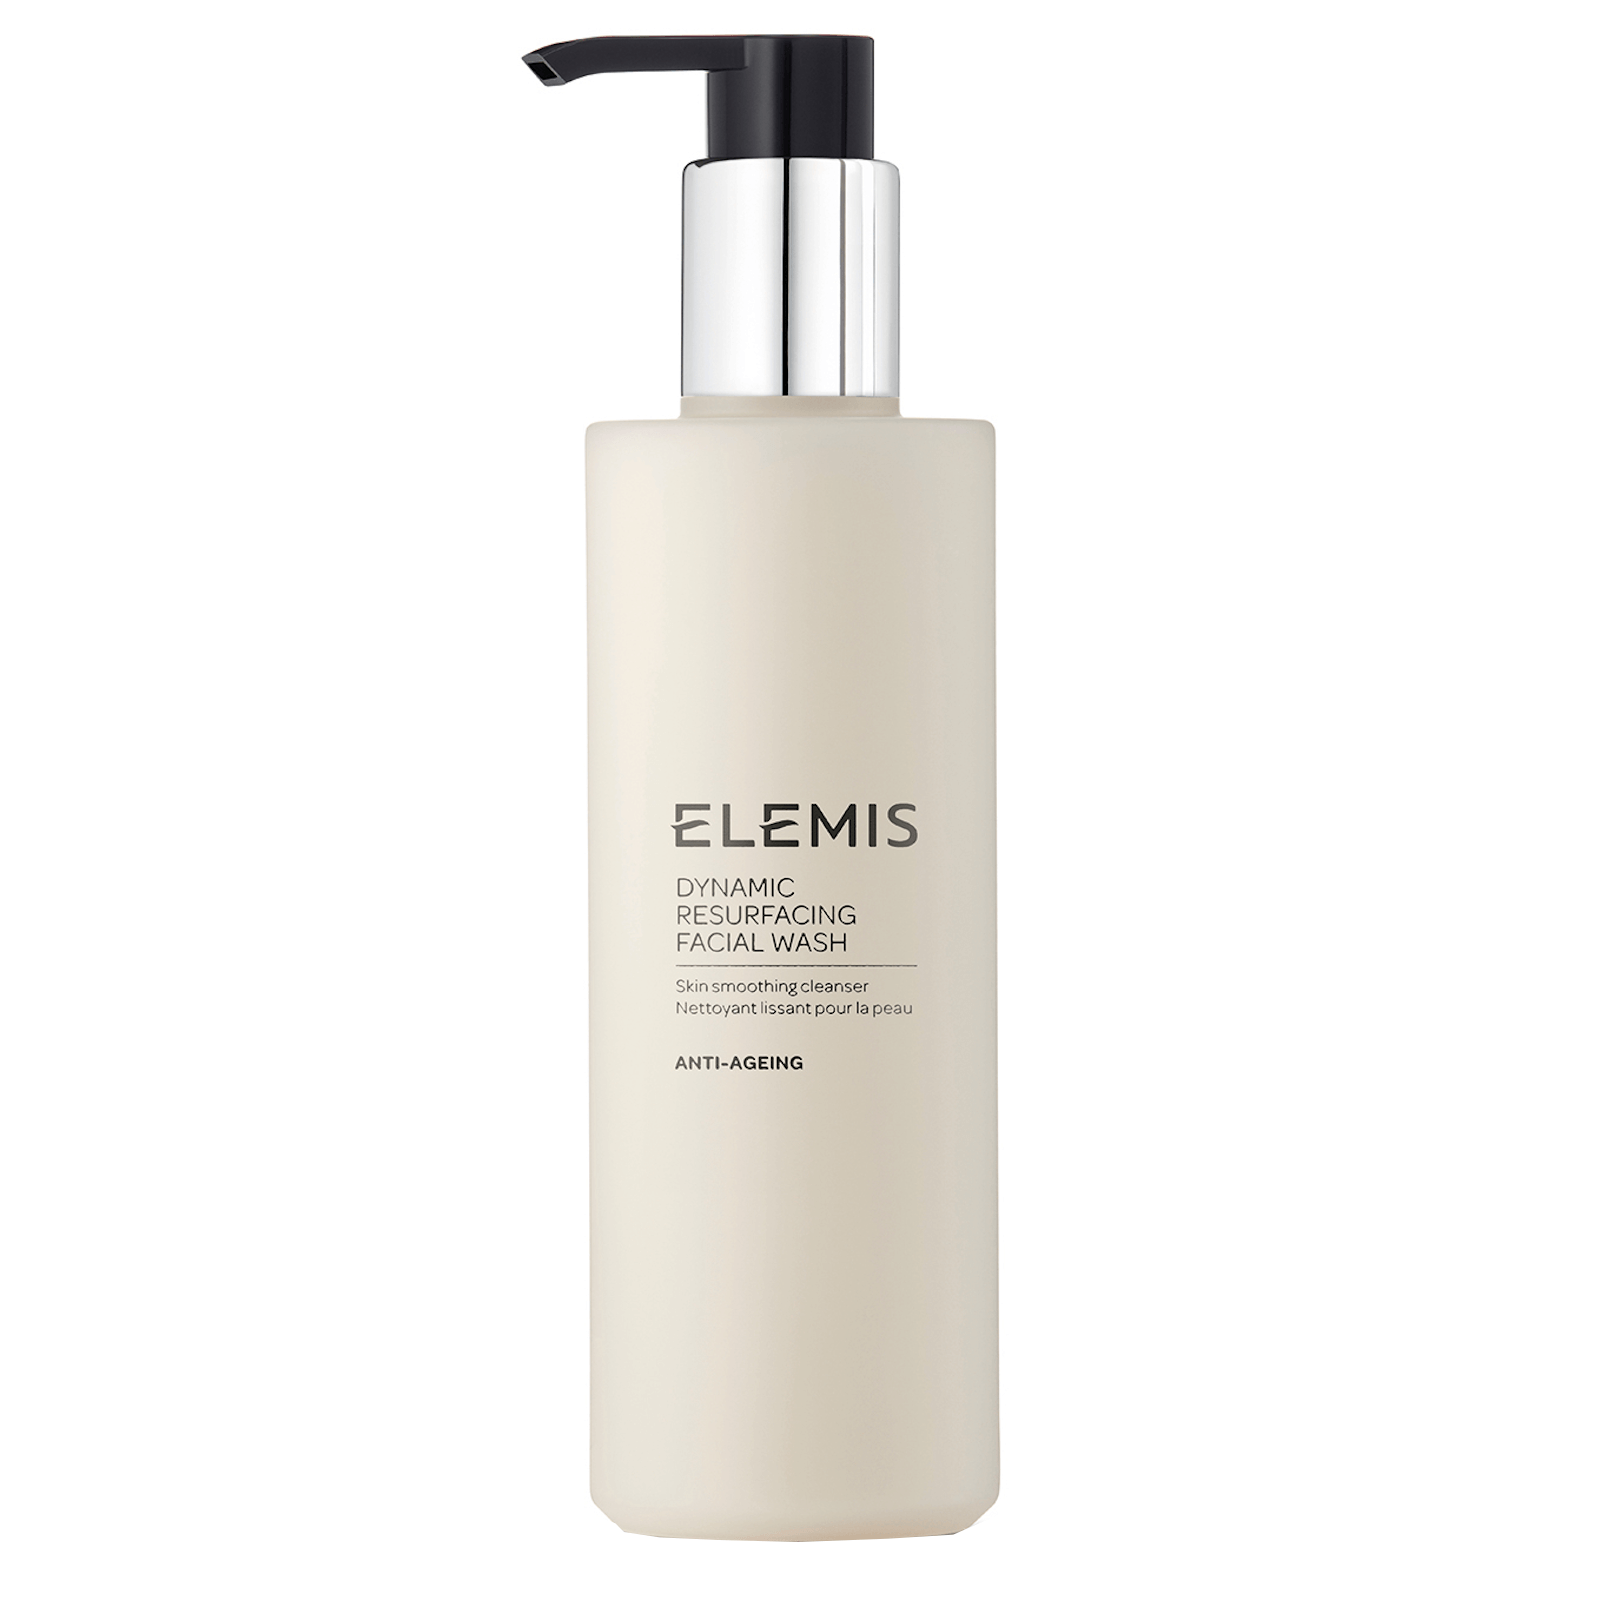 Elemis Dynamic Resurfacing Facial Wash, 200ml, face wash, London Loves Beauty